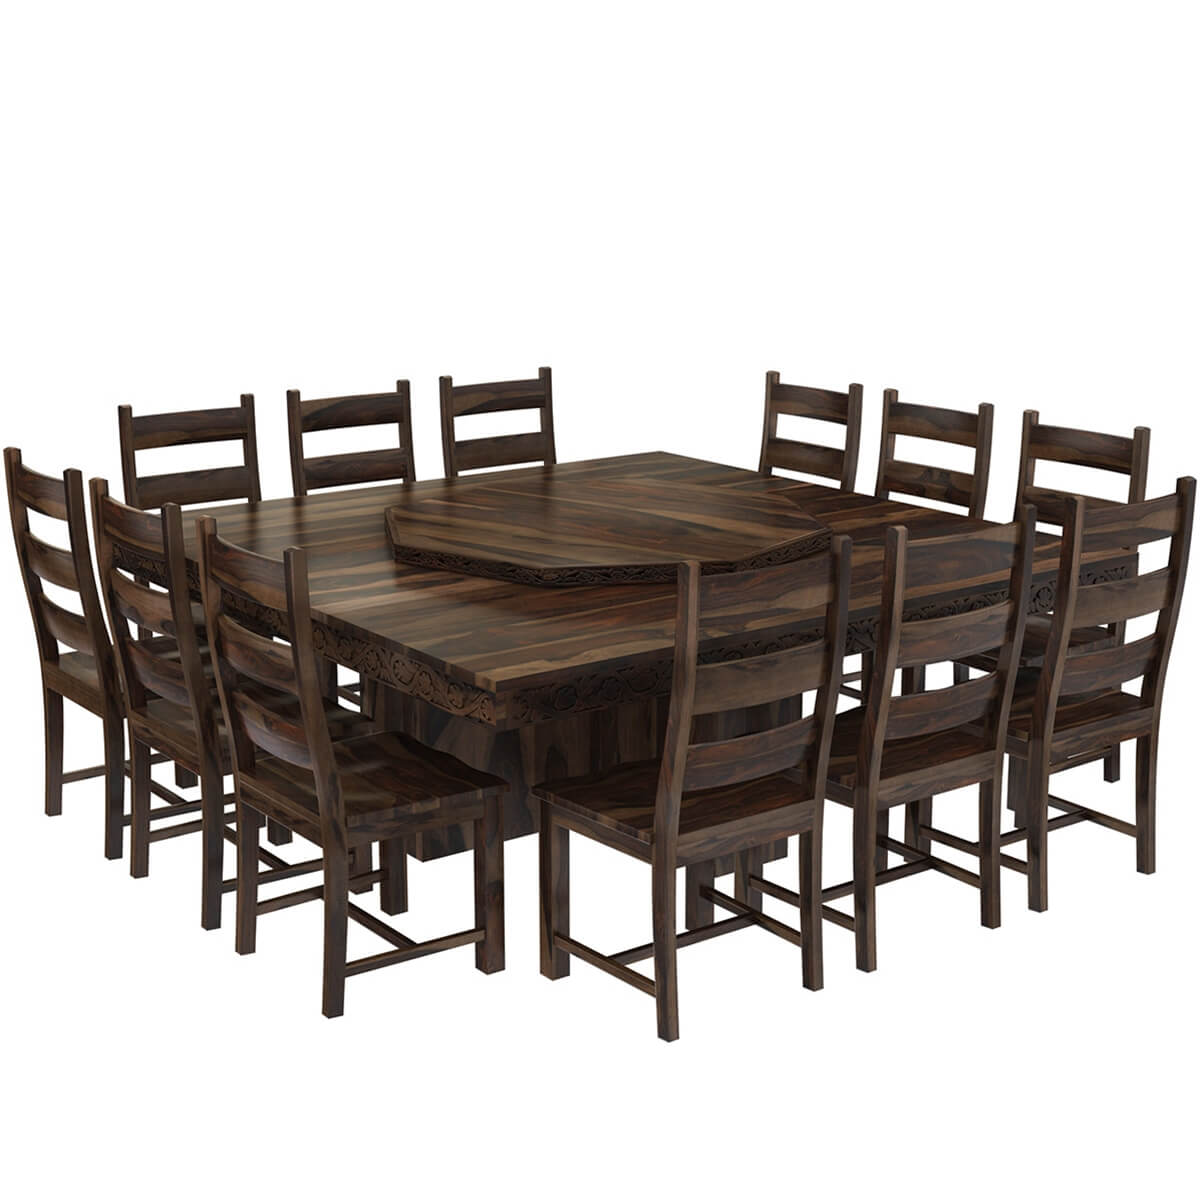 Modern Pioneer Solid Wood Lazy Susan Pedestal Dining Table  : 73791 from www.sierralivingconcepts.com size 1200 x 1200 jpeg 107kB